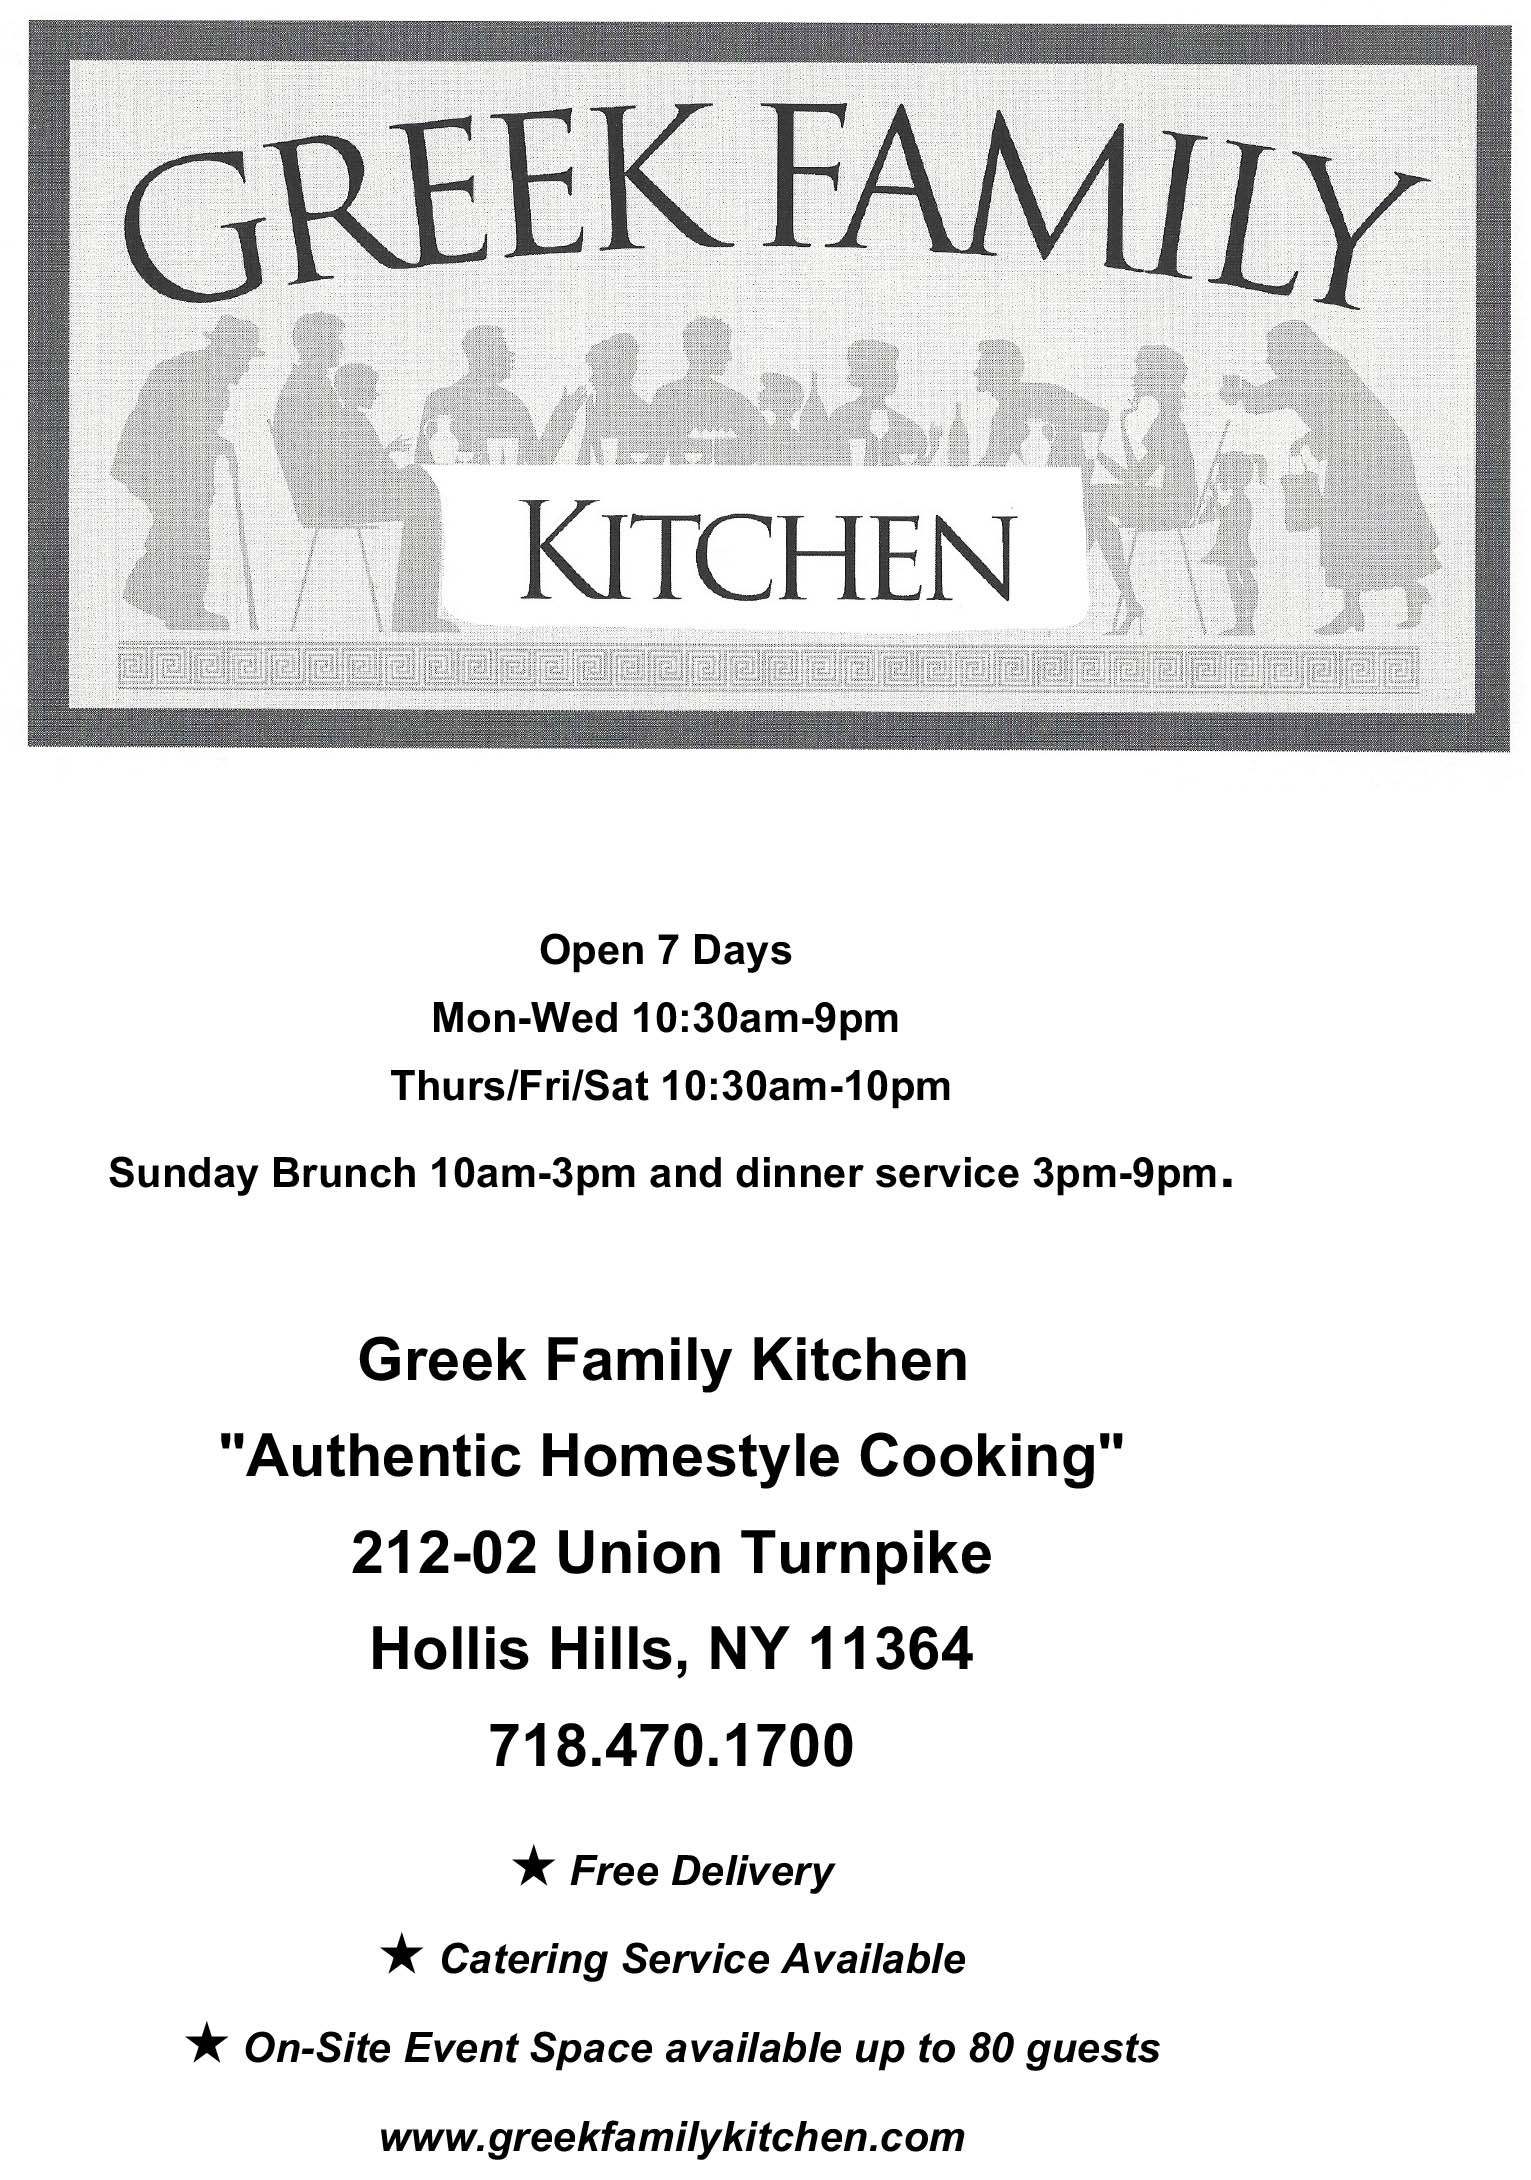 Greek Family Kitchen The Queens Village Republican Club Online